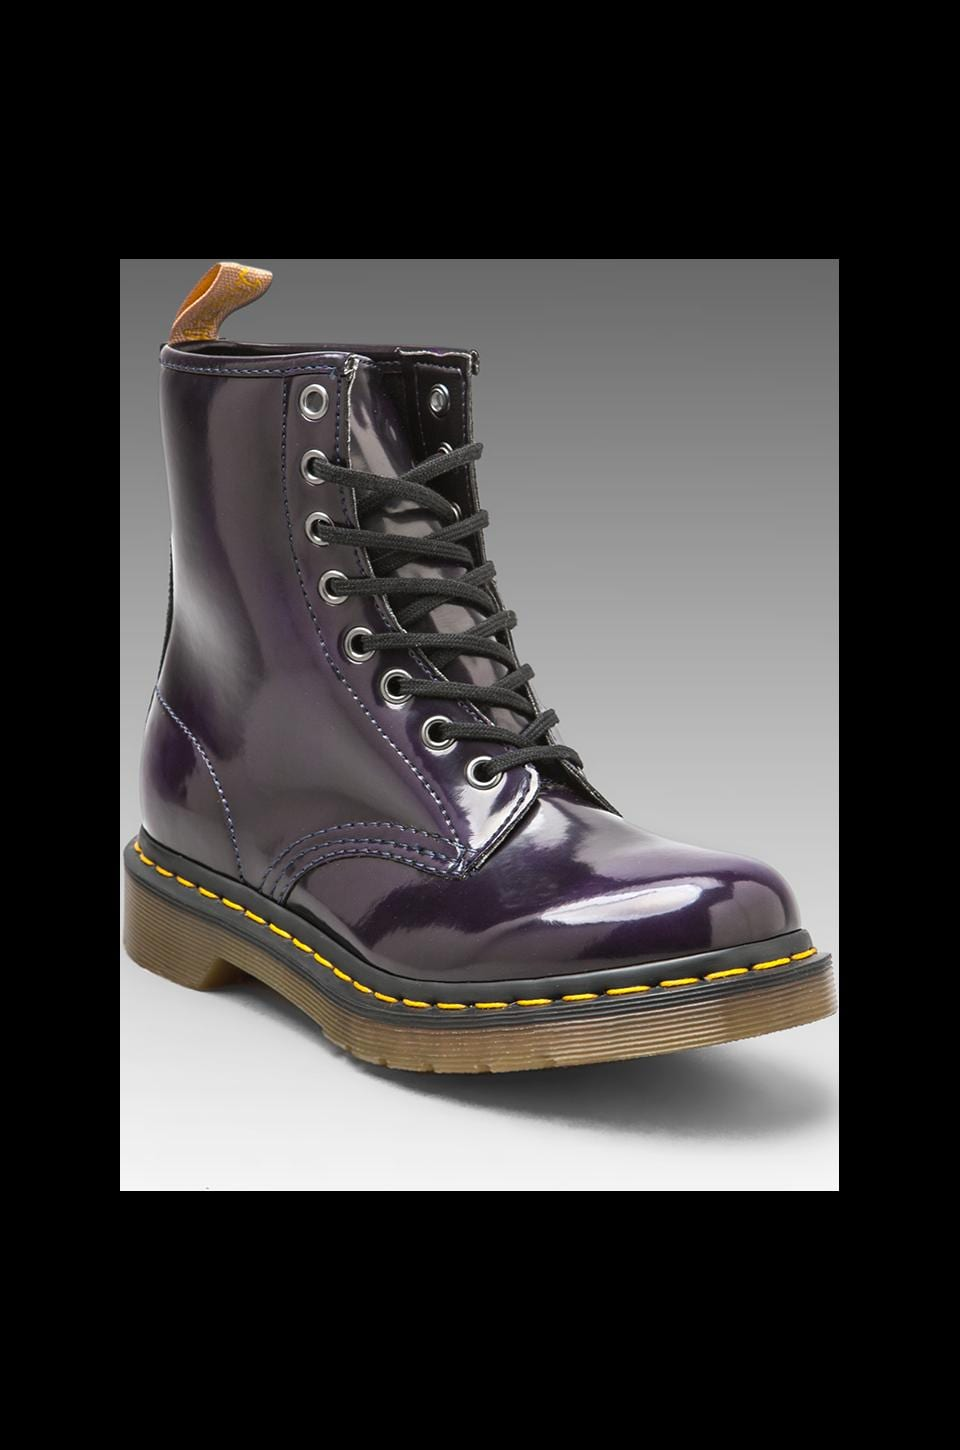 Dr. Martens Vegan 1460 8 Eye Boot in Purple Violet